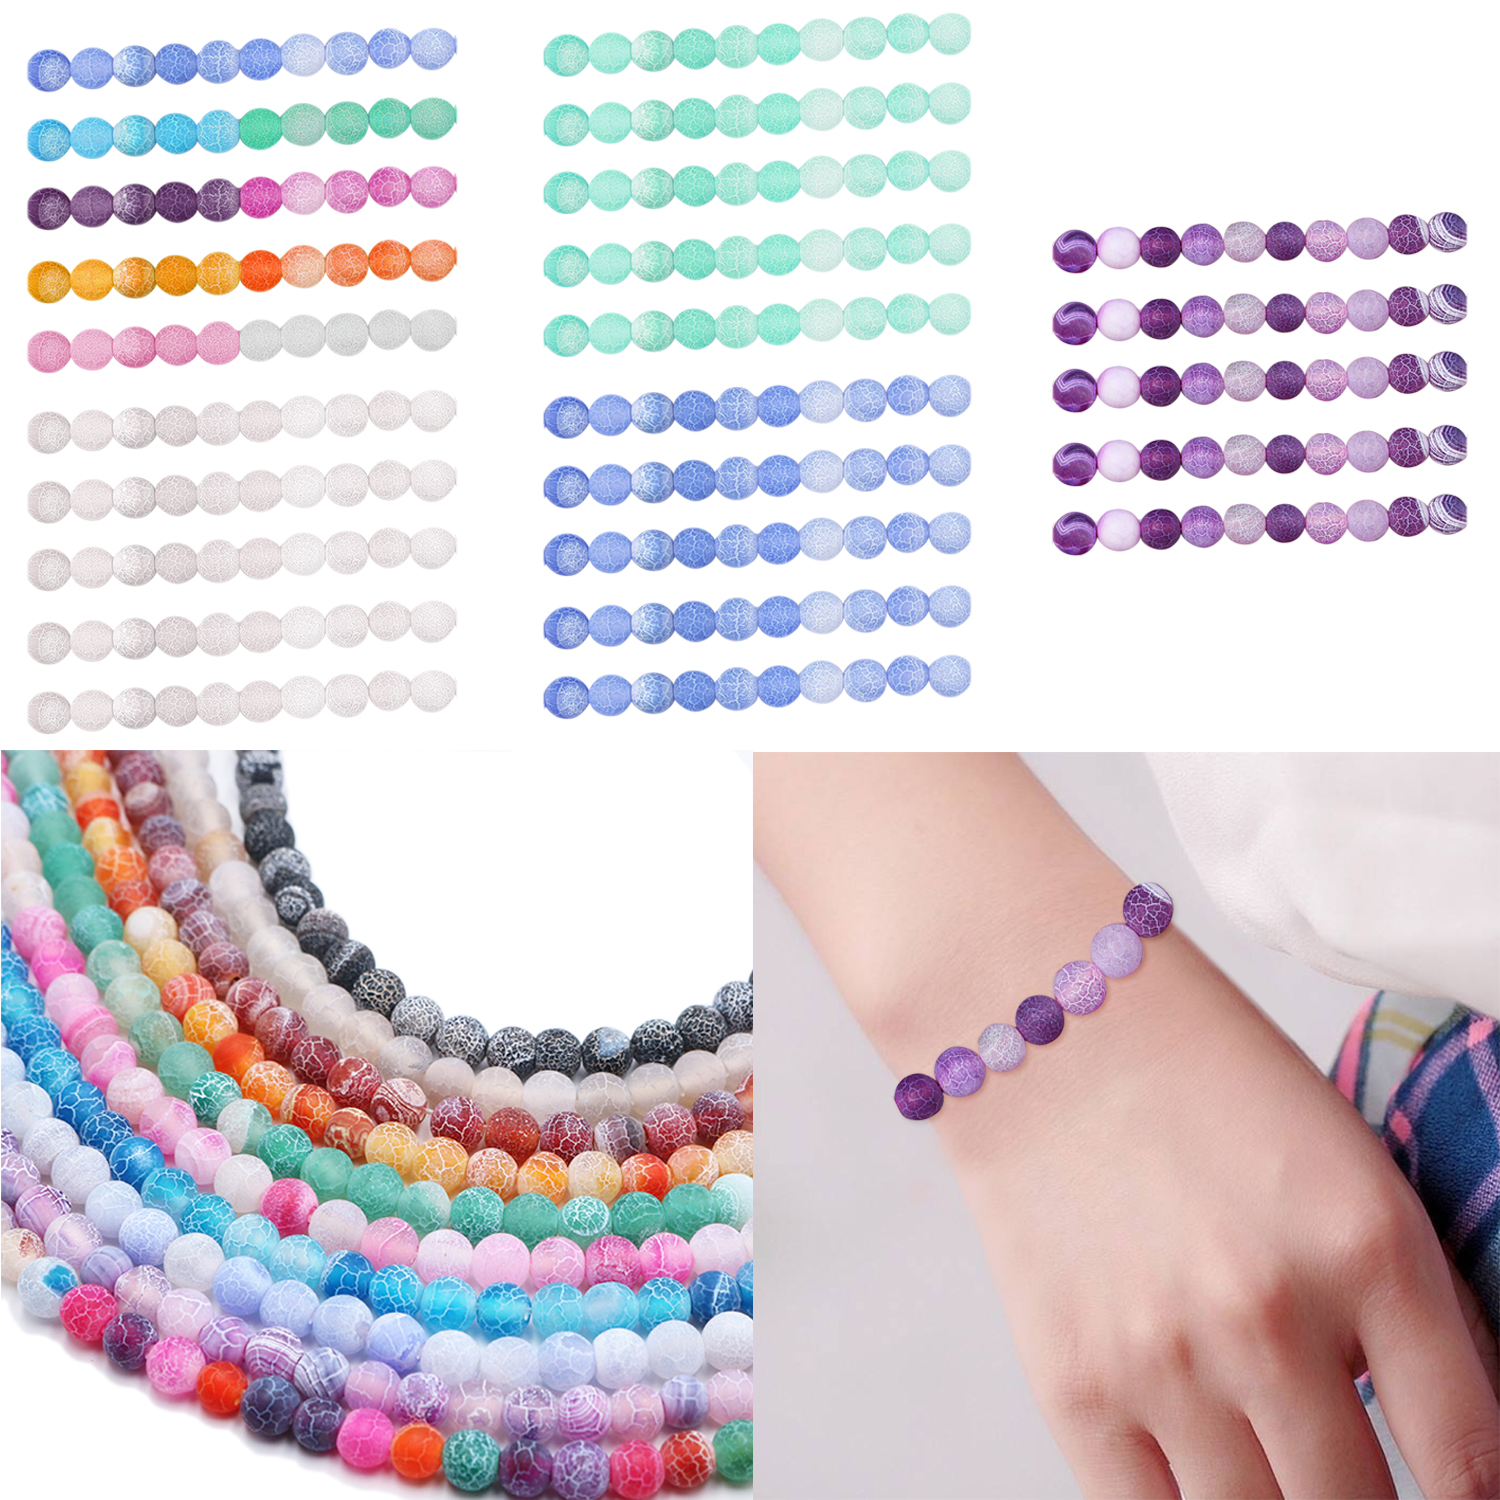 96Pcs 8mm Fashion Ranbow Natural Round Frosted Crackle Agate Gemstone Stone Loose Beads Toys Gifts DIY Bracelet Necklace Making